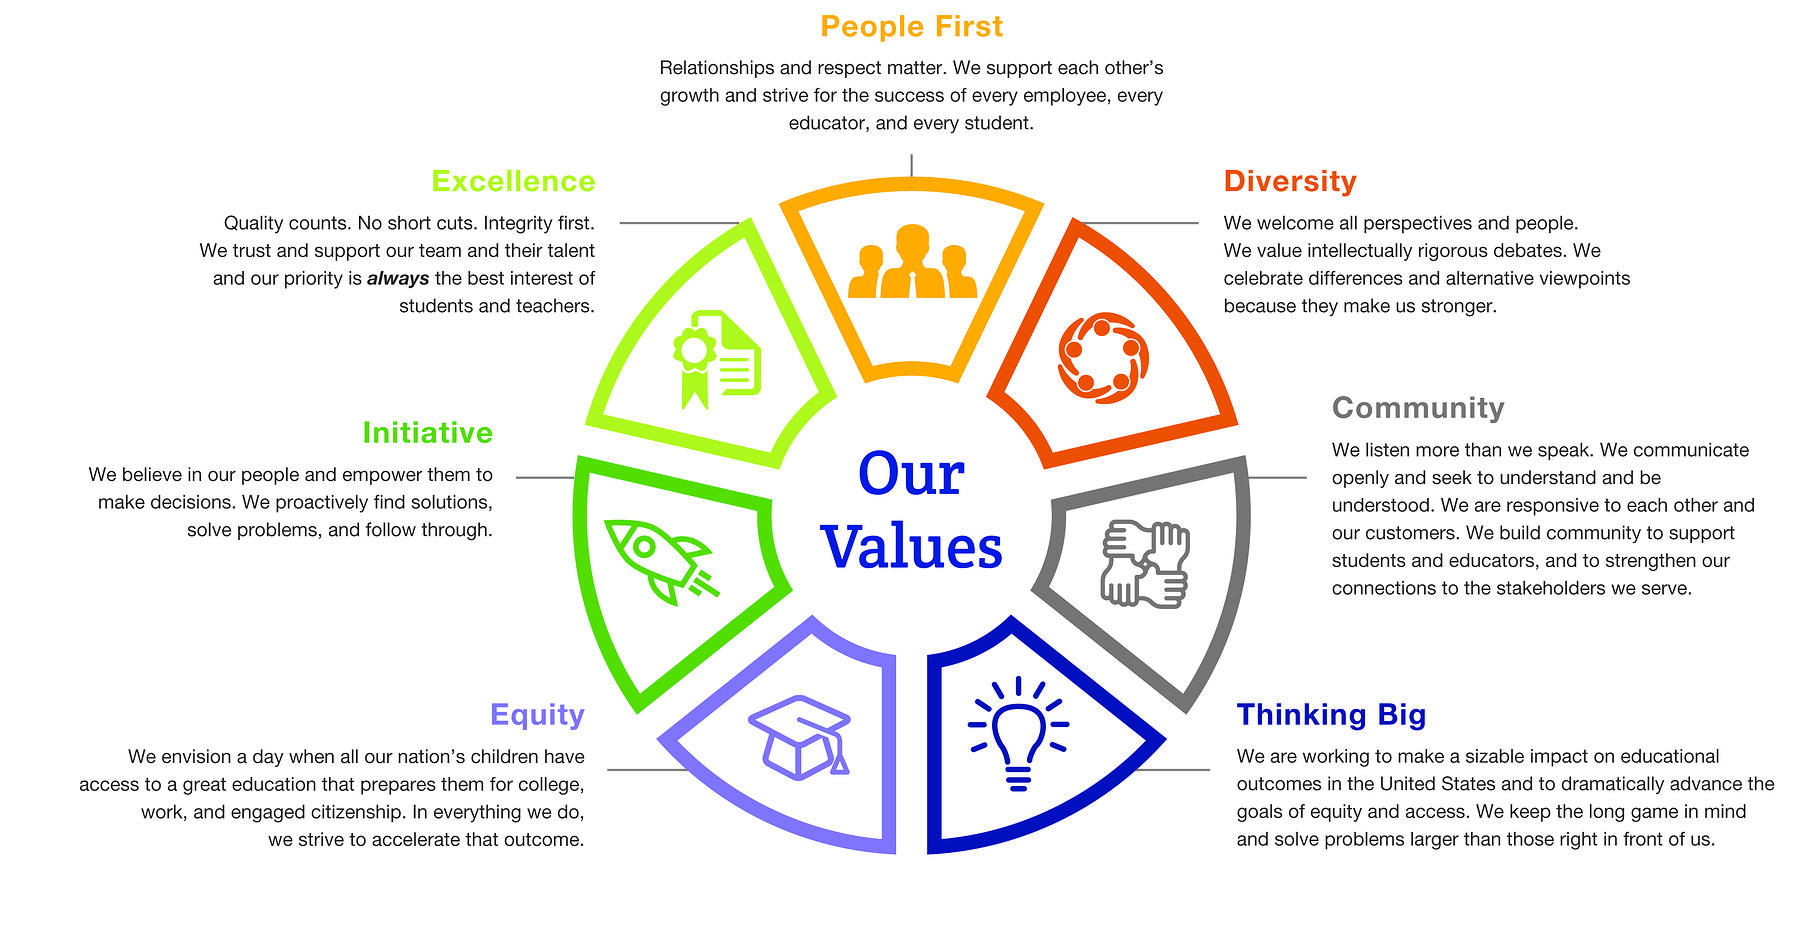 CenterPoint_OurValuesGraphic_Copy